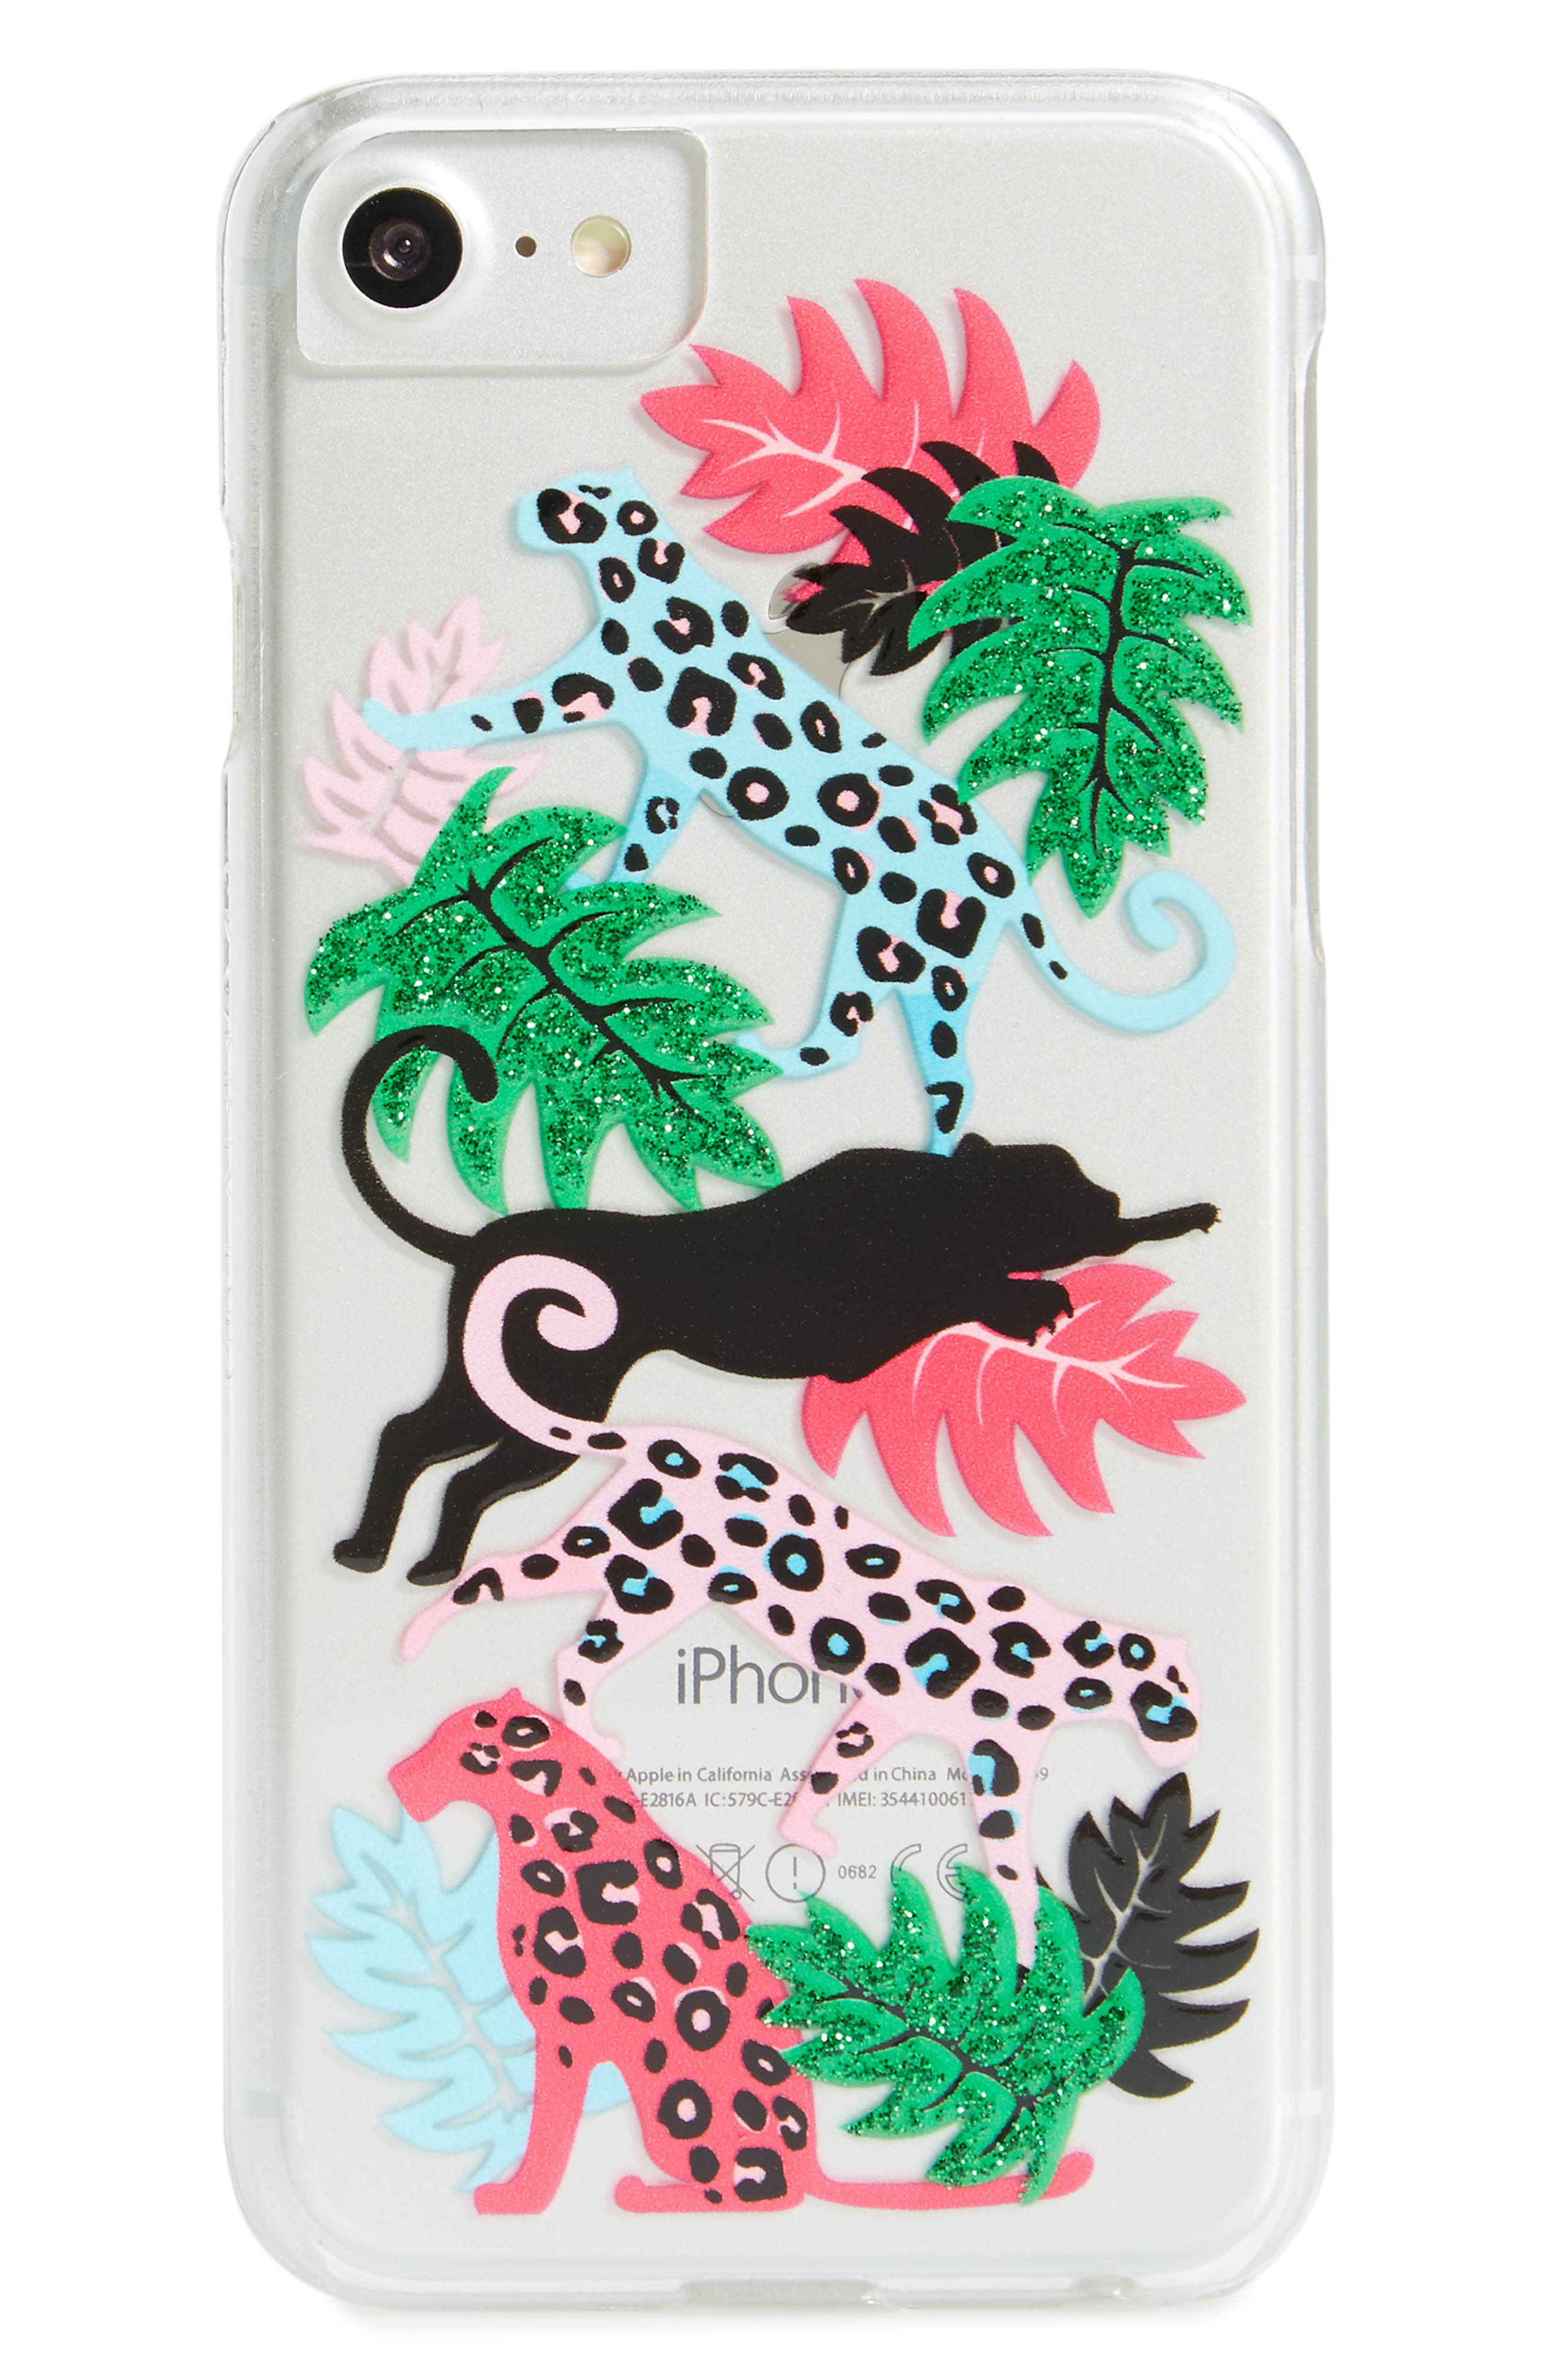 iphone picture case skinnydip cell phone cases nordstrom 12132